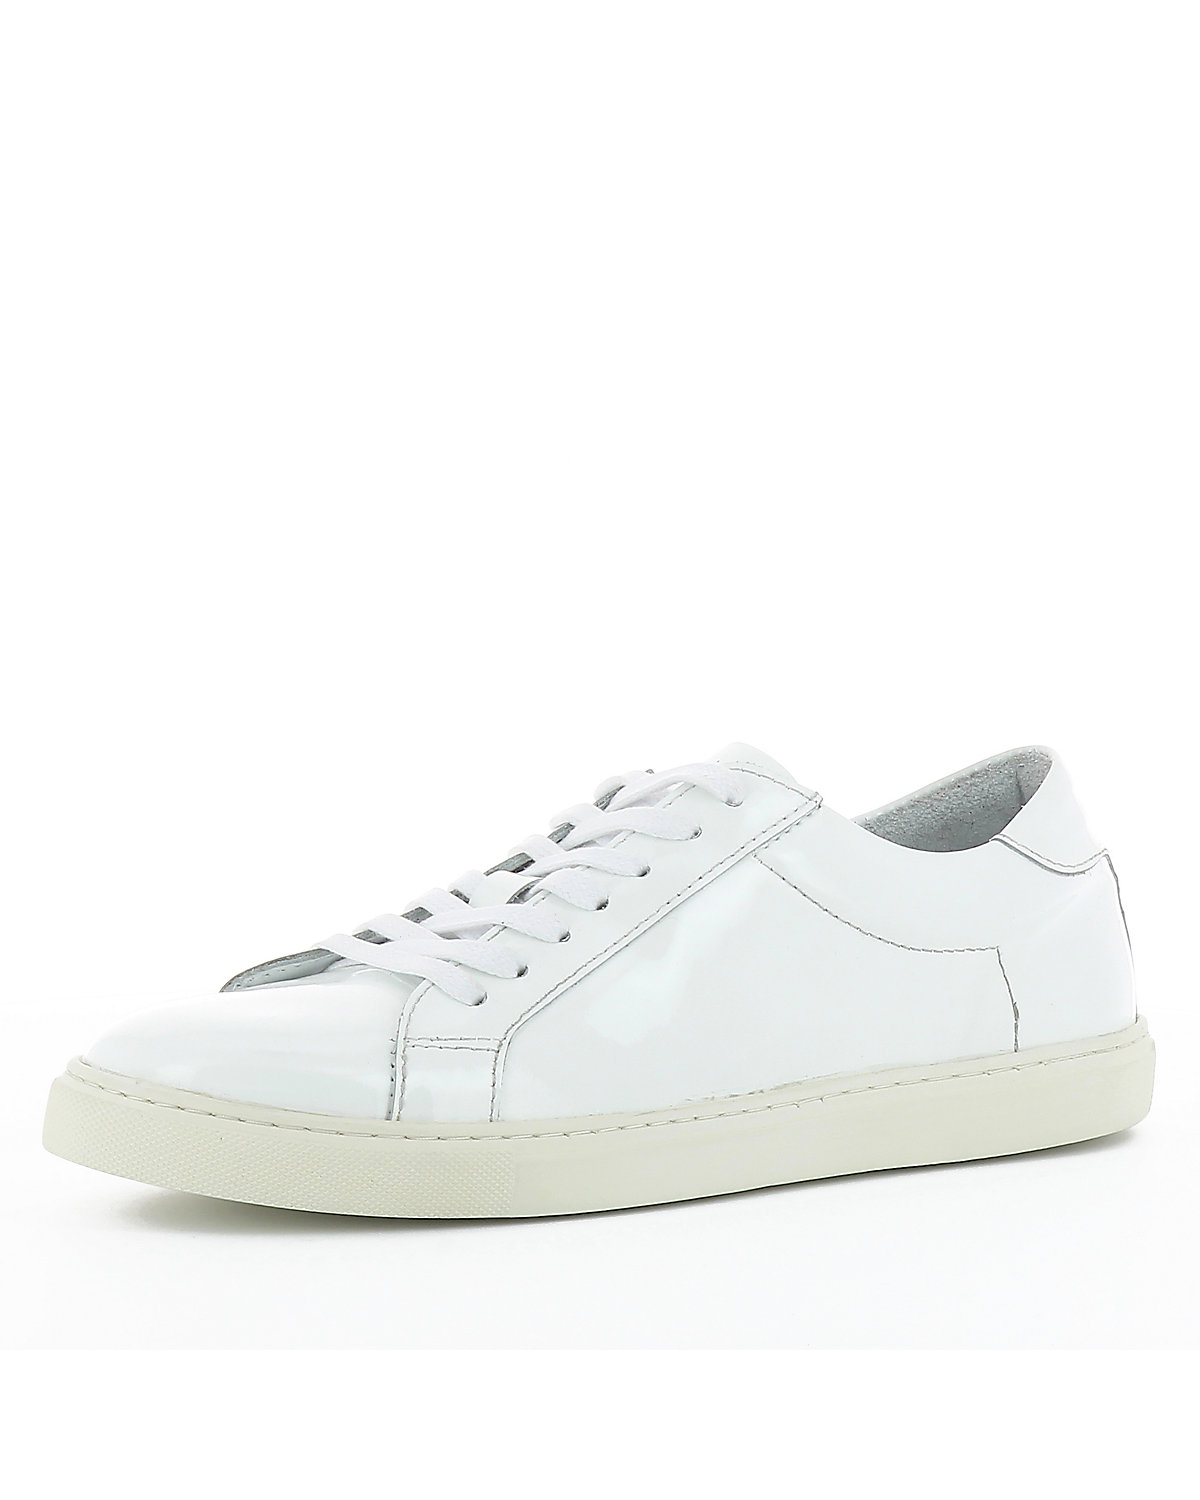 Evita Evita Evita Shoes, Sneakers Low MARISA, weiß 39234c